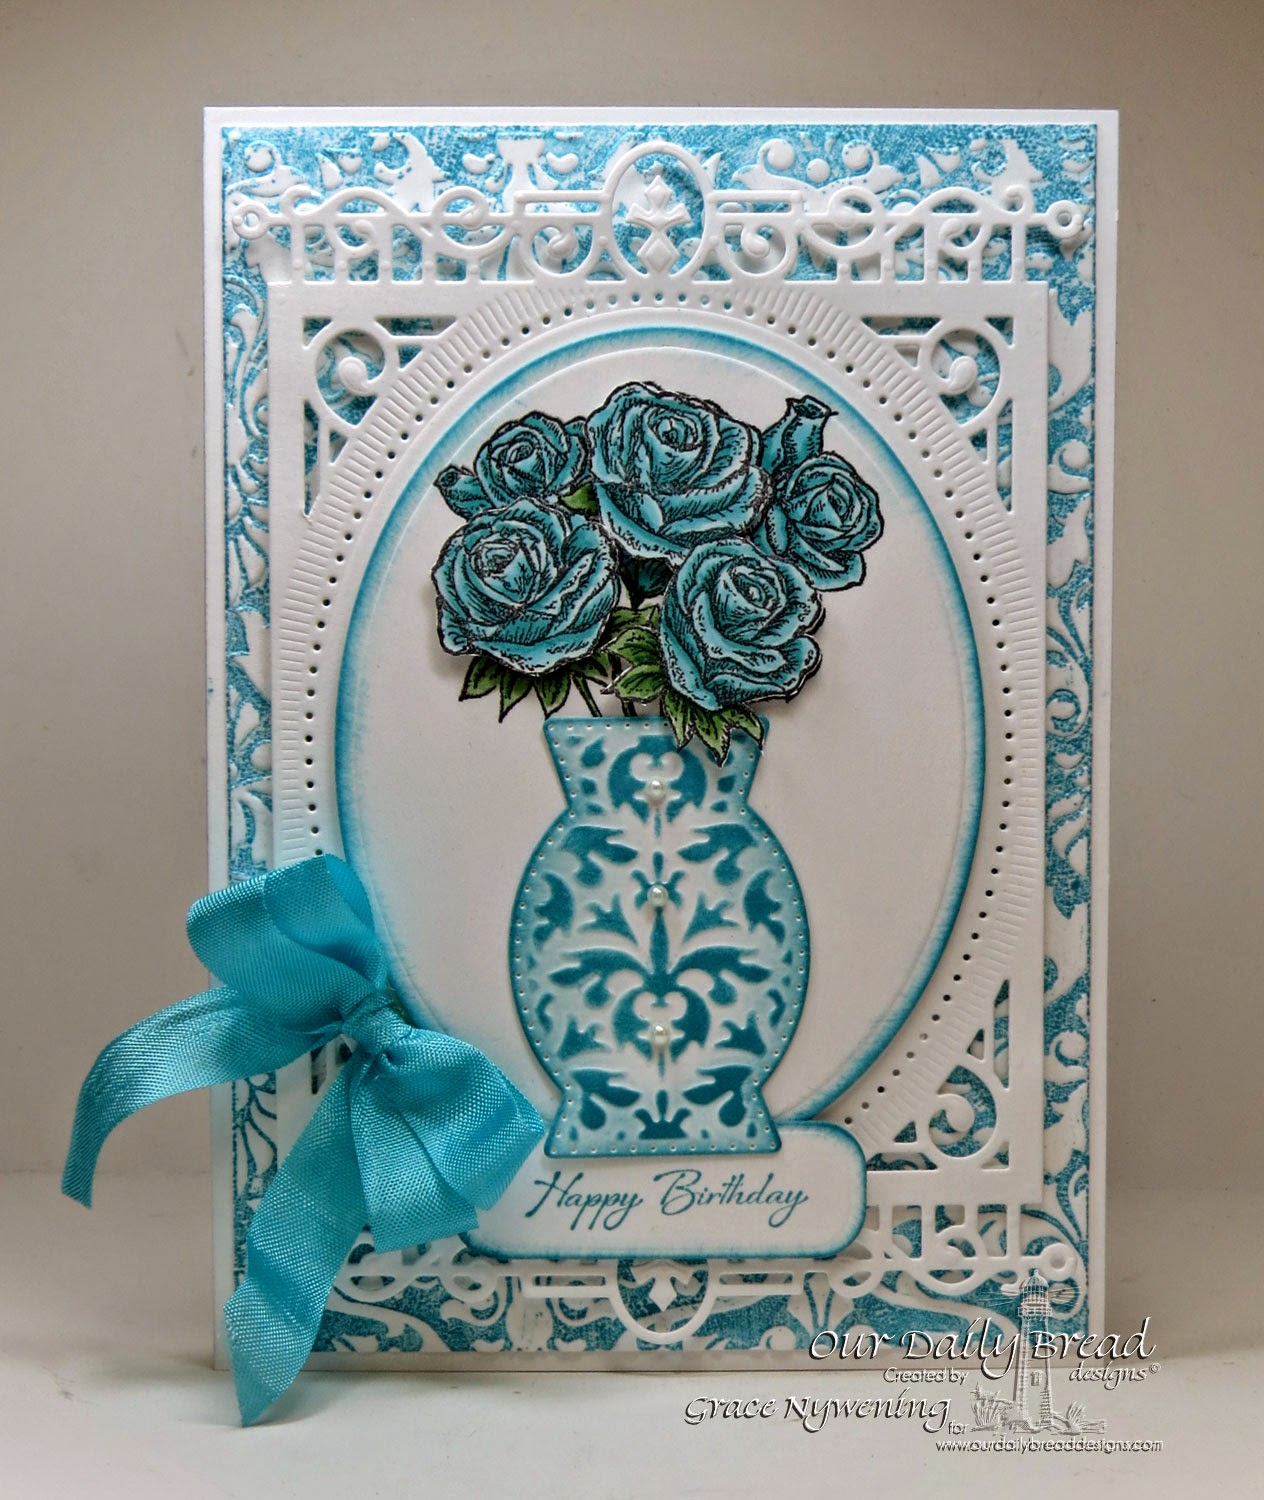 Our Daily Bread designs stamps, Rose Bouquet, Iris, ODBD Decorative Vase Die, designed by Grace Nywening